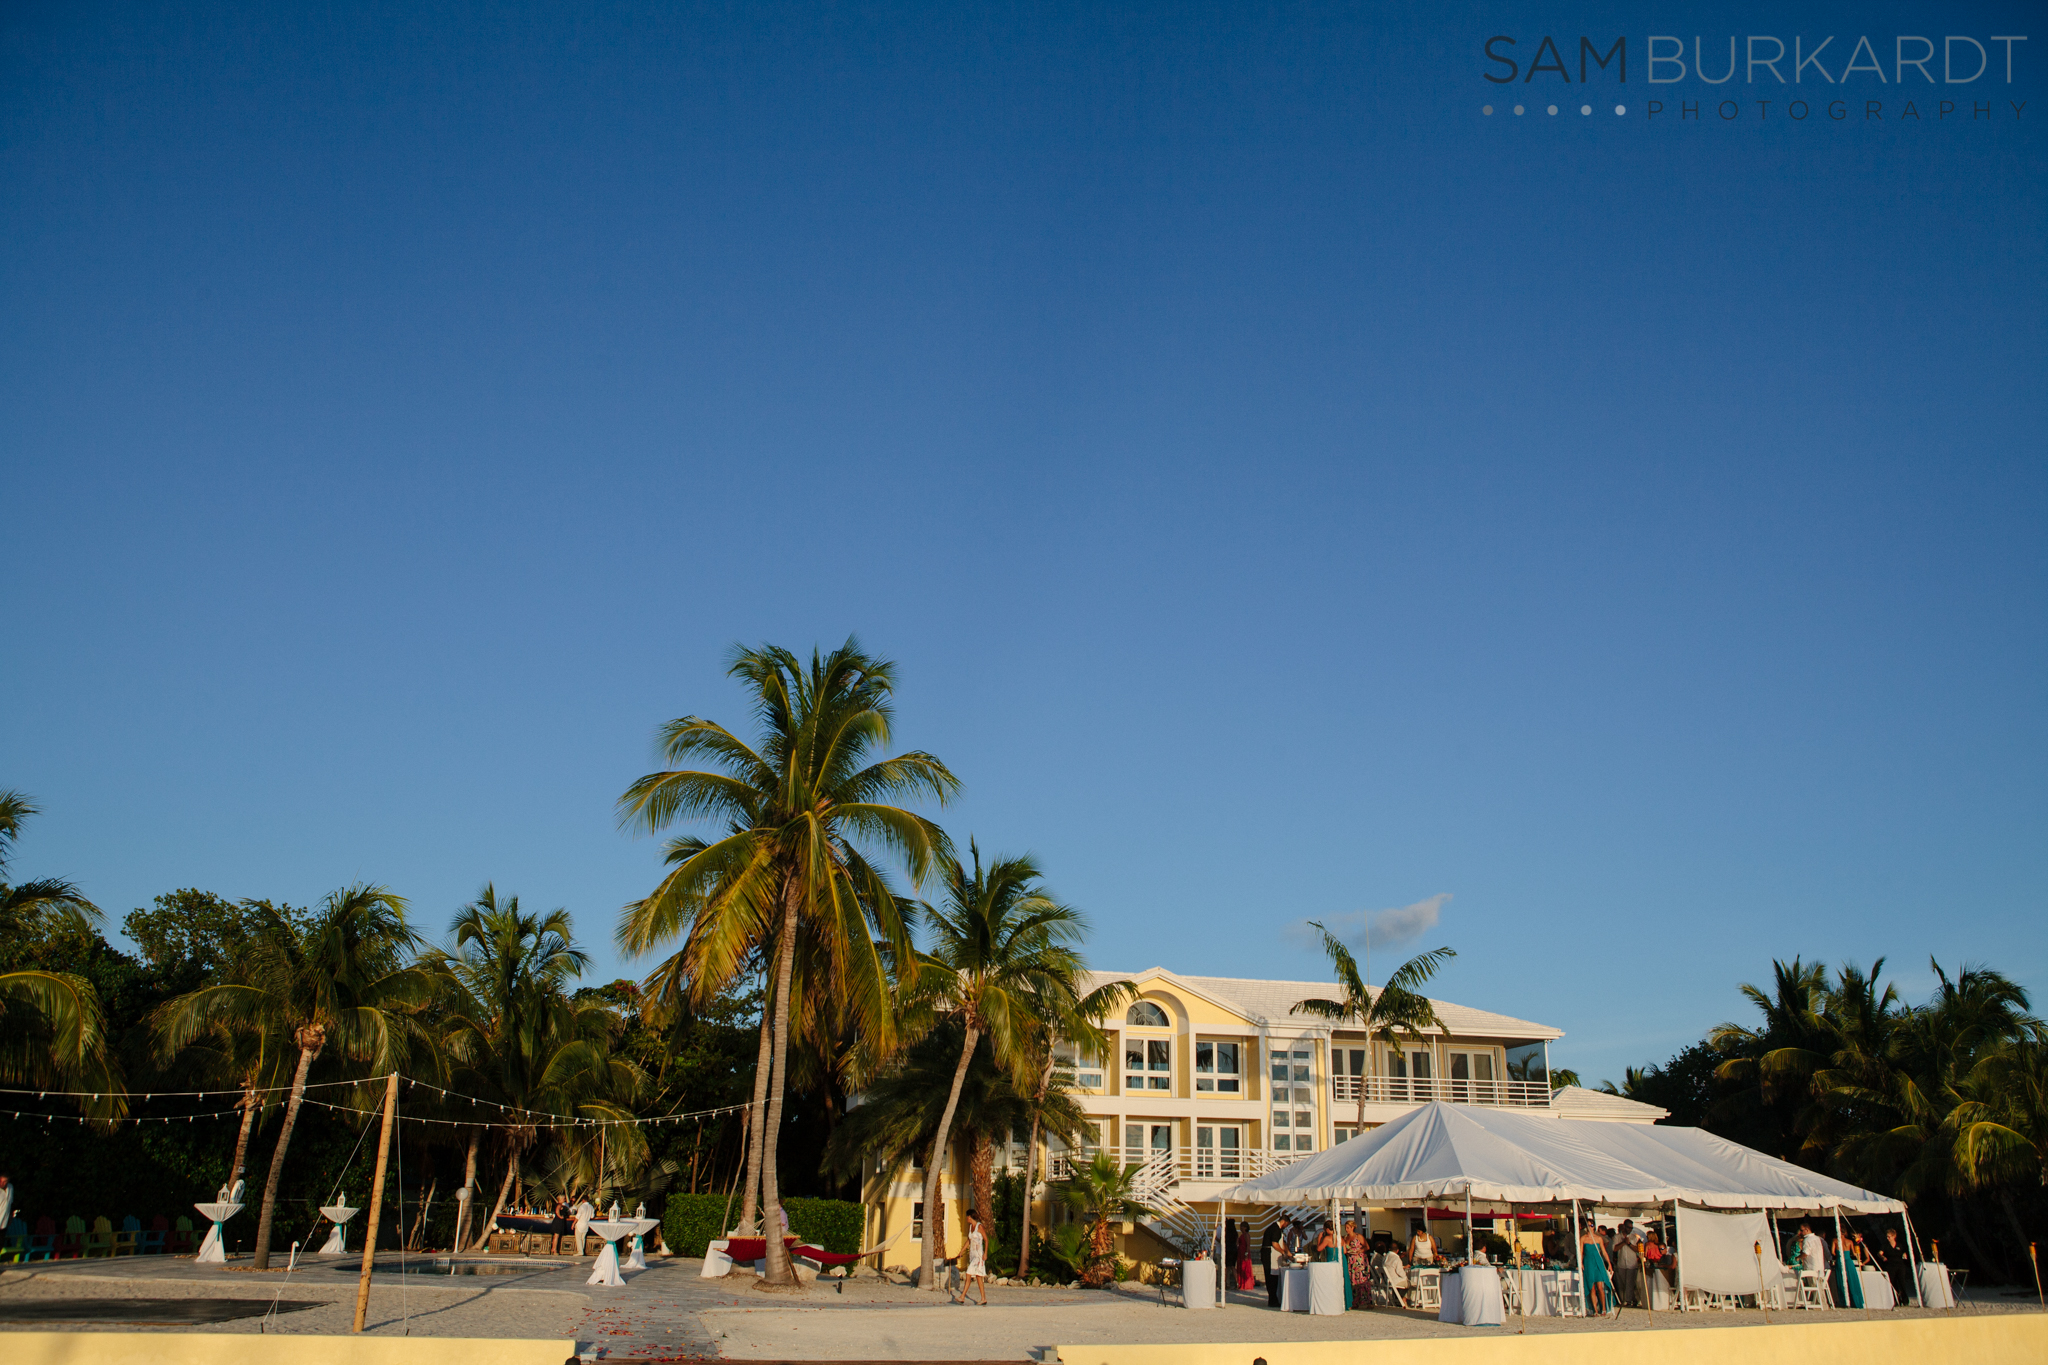 samburkardt_key_west_wedding_marathon_florida_summer_beach_ocean_front_0058.jpg